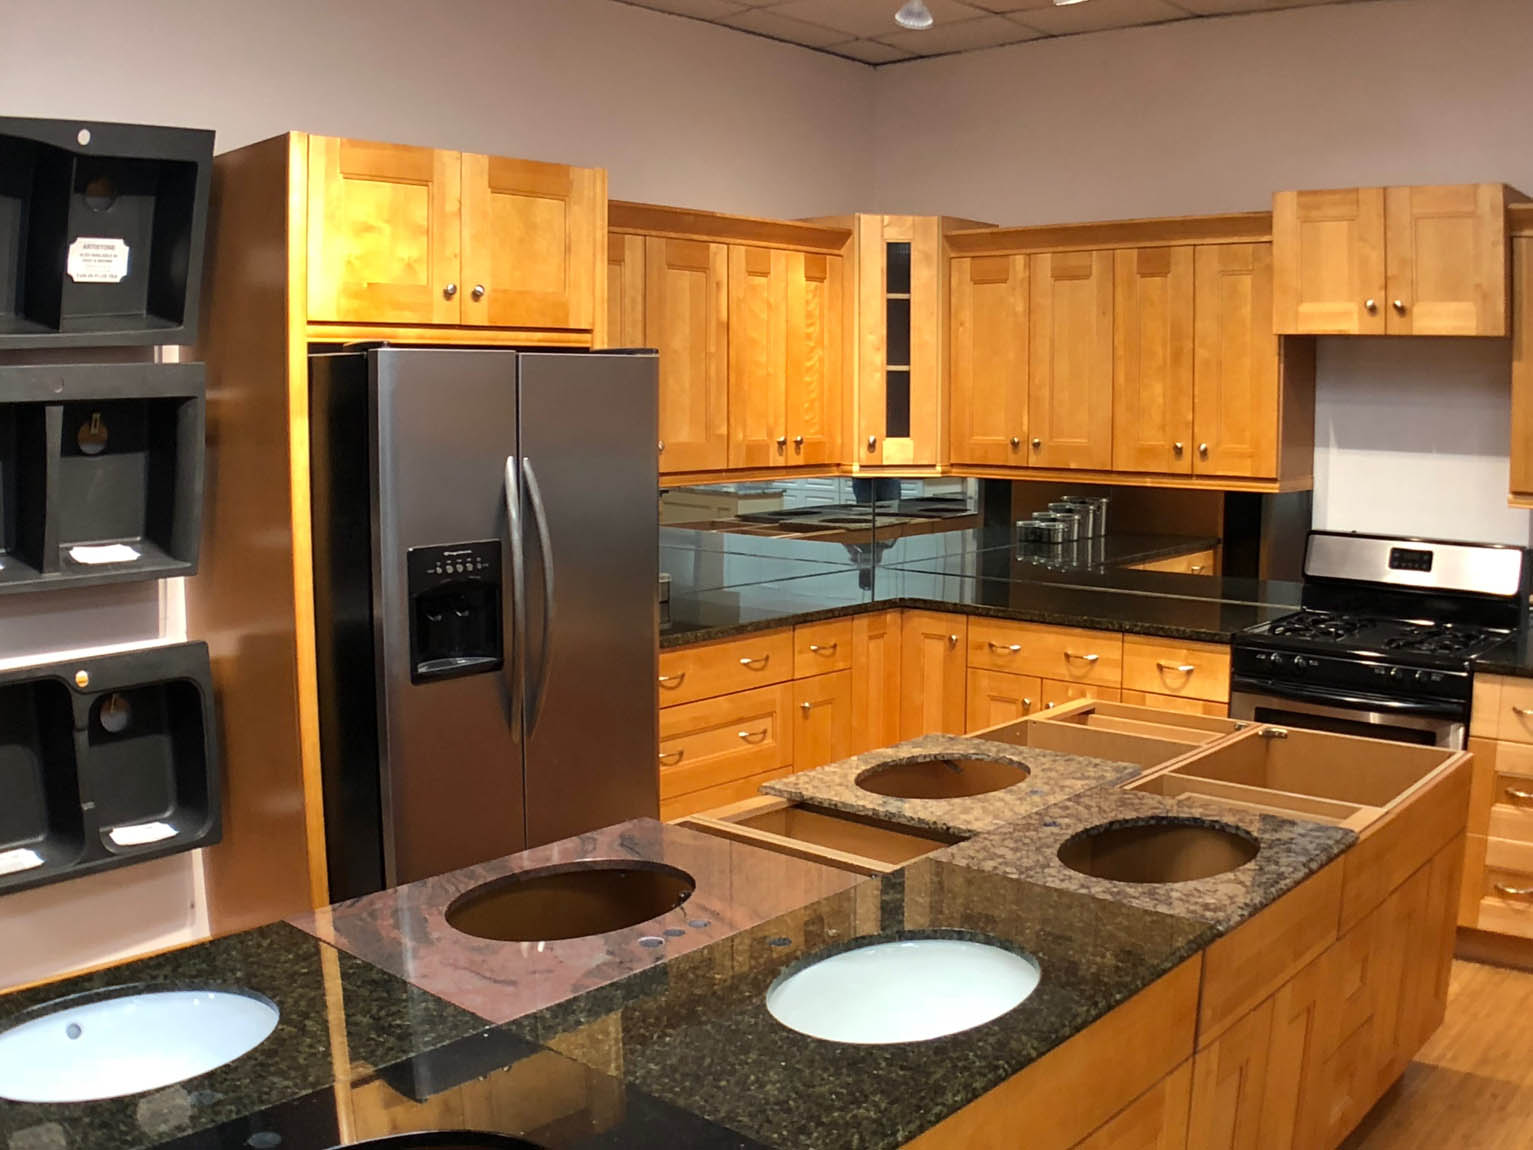 Why Should You Use Granite for Your Kitchen Countertop?